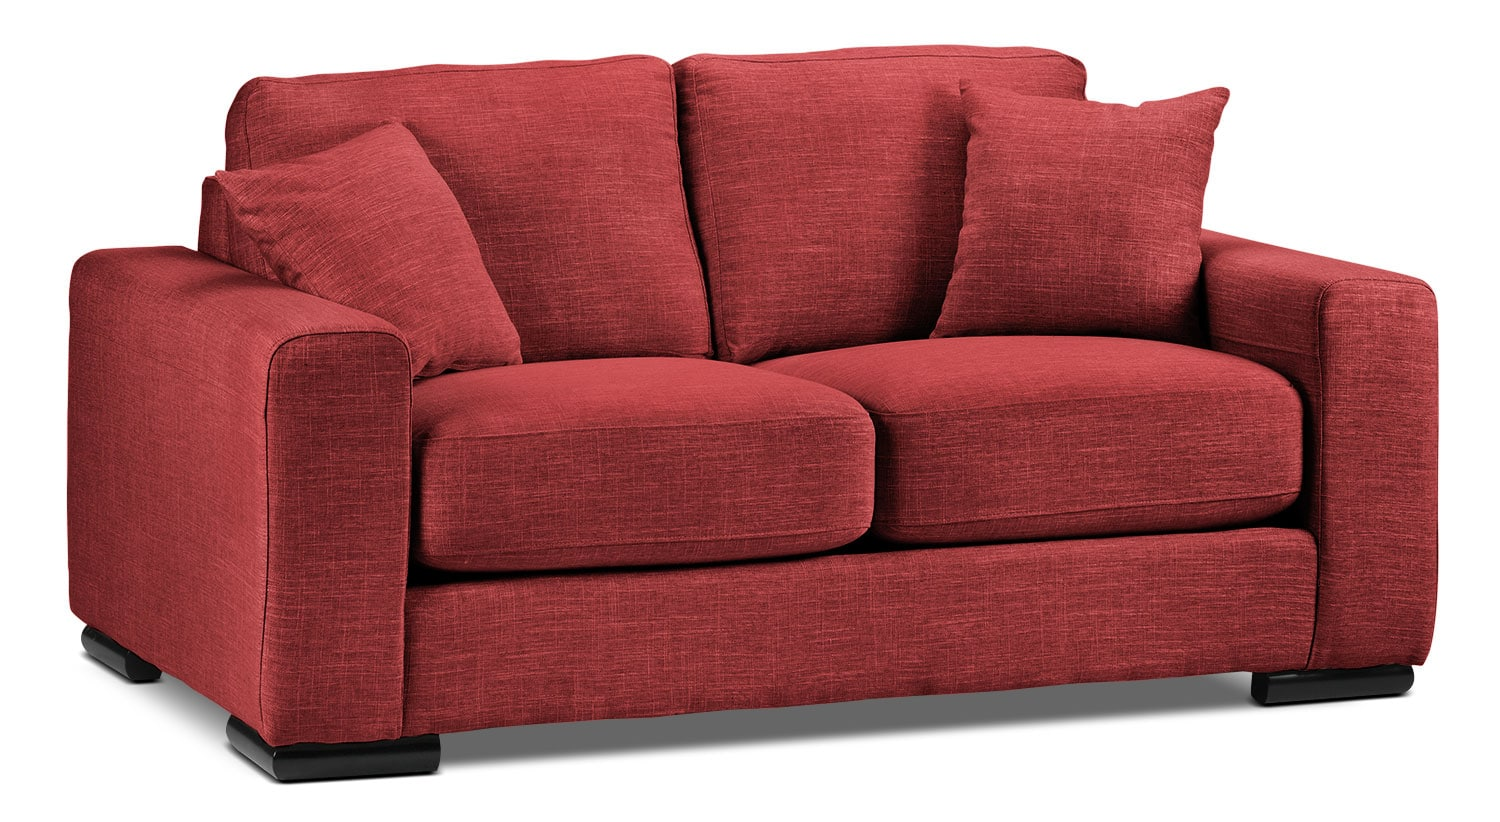 Living Room Furniture - Precious Loveseat - Red